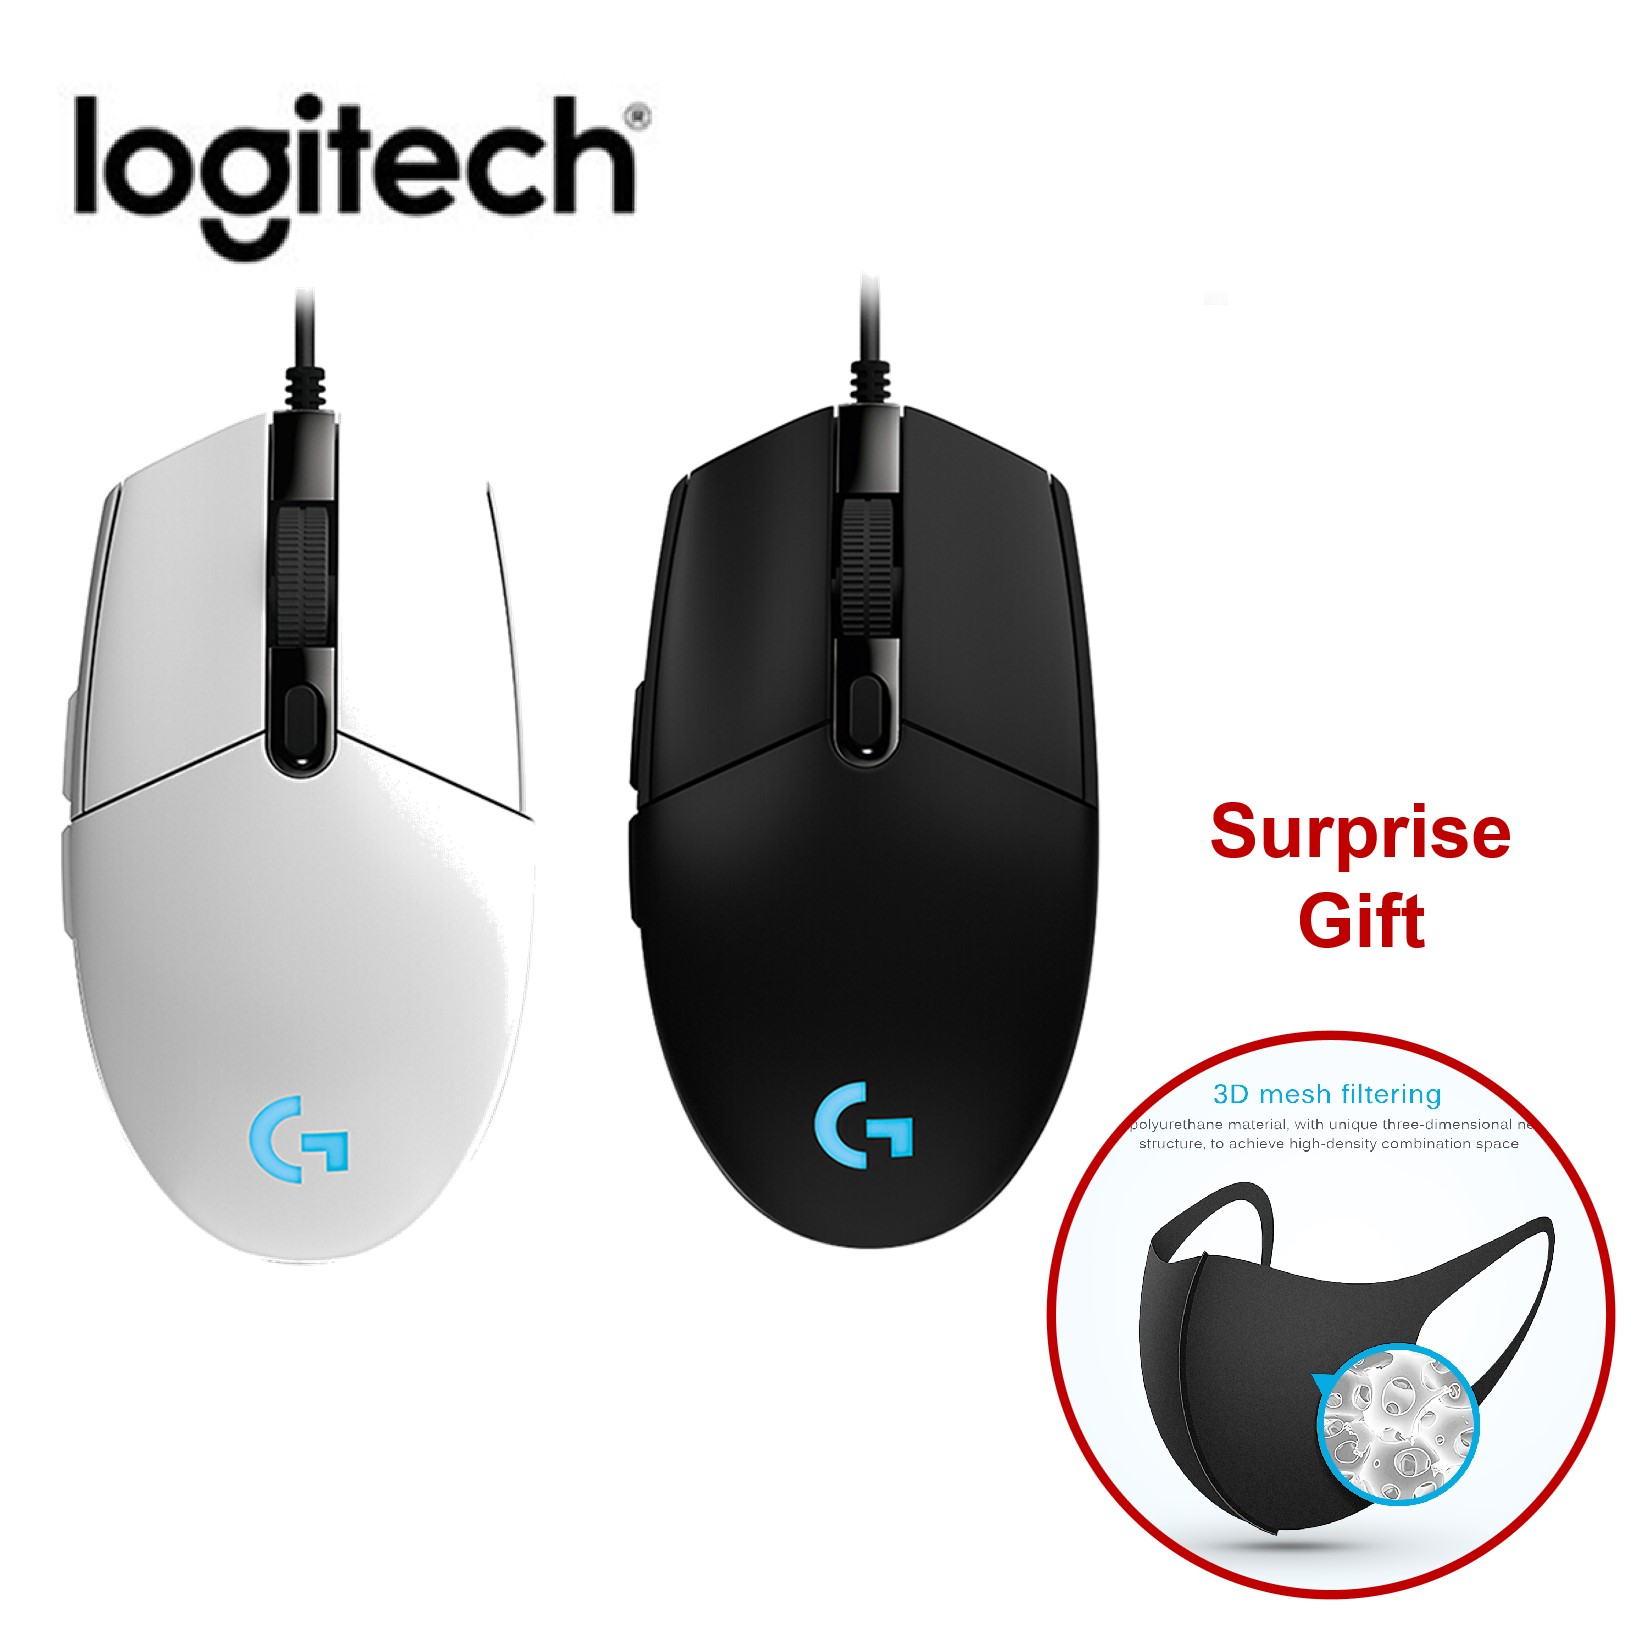 Logitech G102 Gaming Mouse Programmable Buttons 6000DPI RGB Wired Mouse Computer Peripheral Accessories (Surprise Gift 1pc Mask) title=